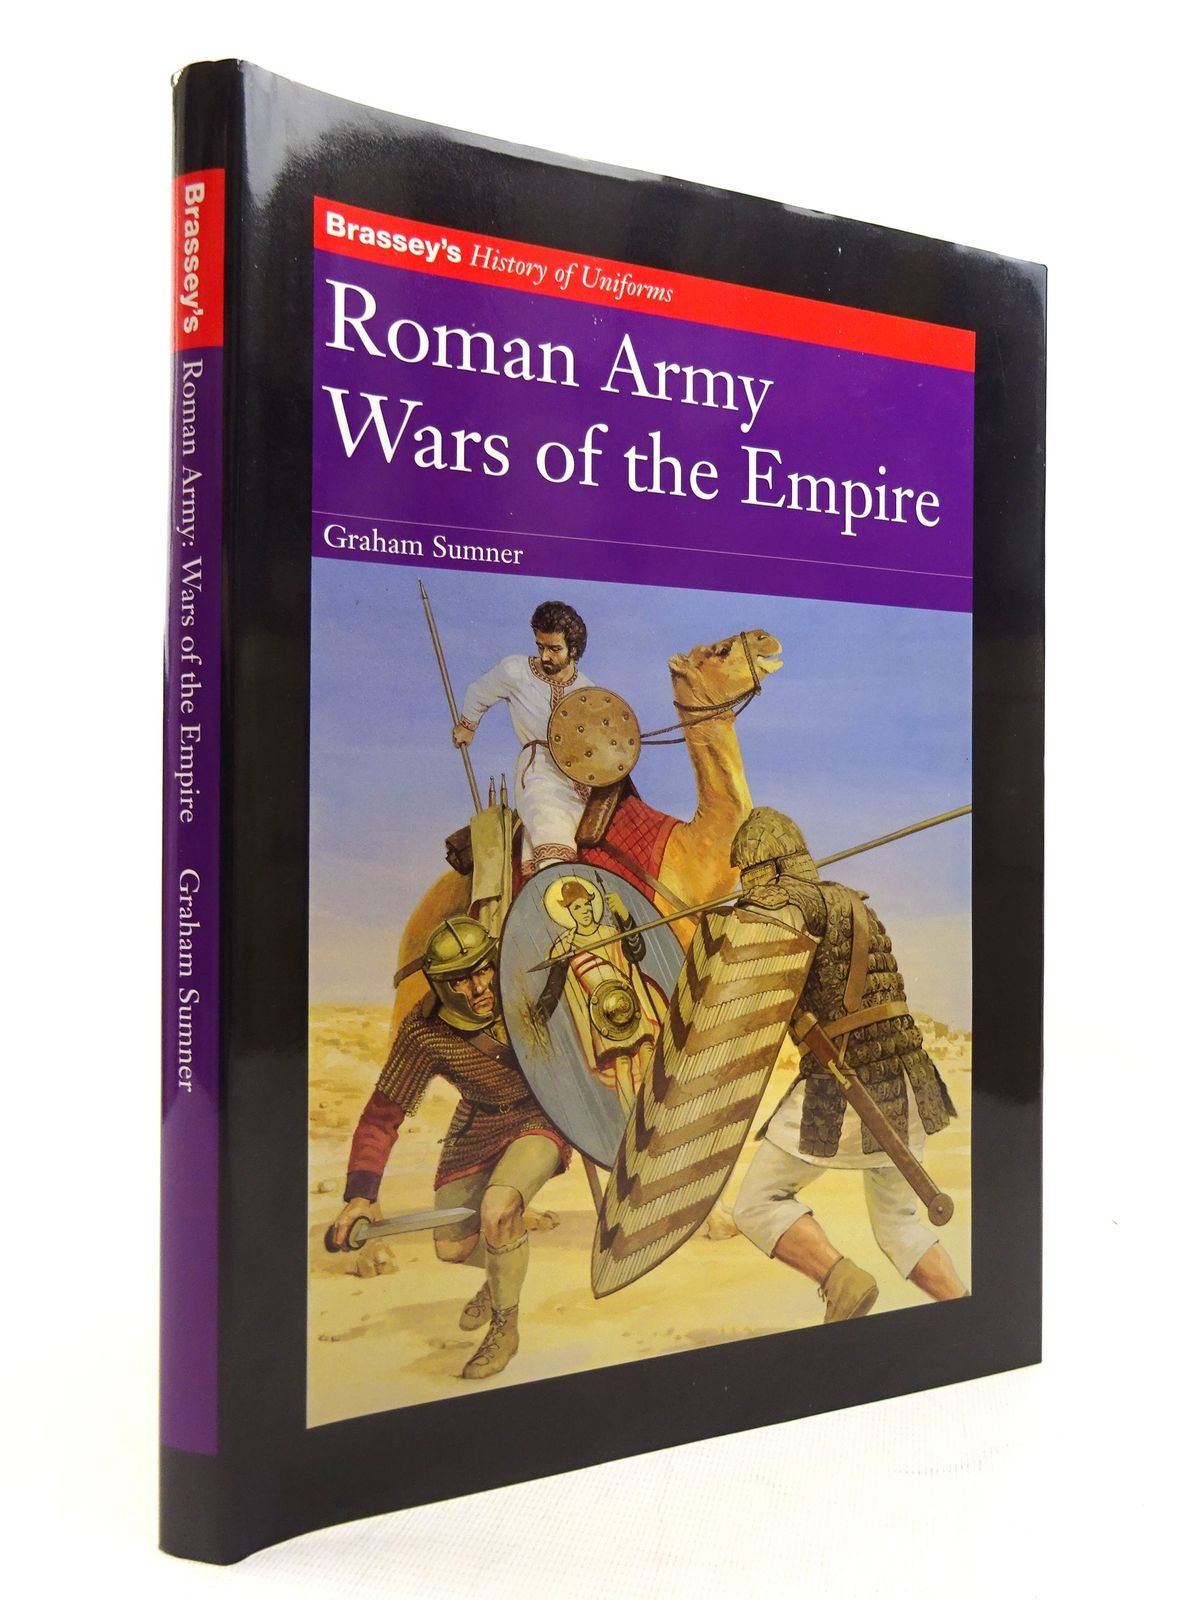 Photo of ROMAN ARMY WARS OF THE EMPIRE written by Sumner, Graham illustrated by Turner, Graham published by Brassey's (STOCK CODE: 1816015)  for sale by Stella & Rose's Books